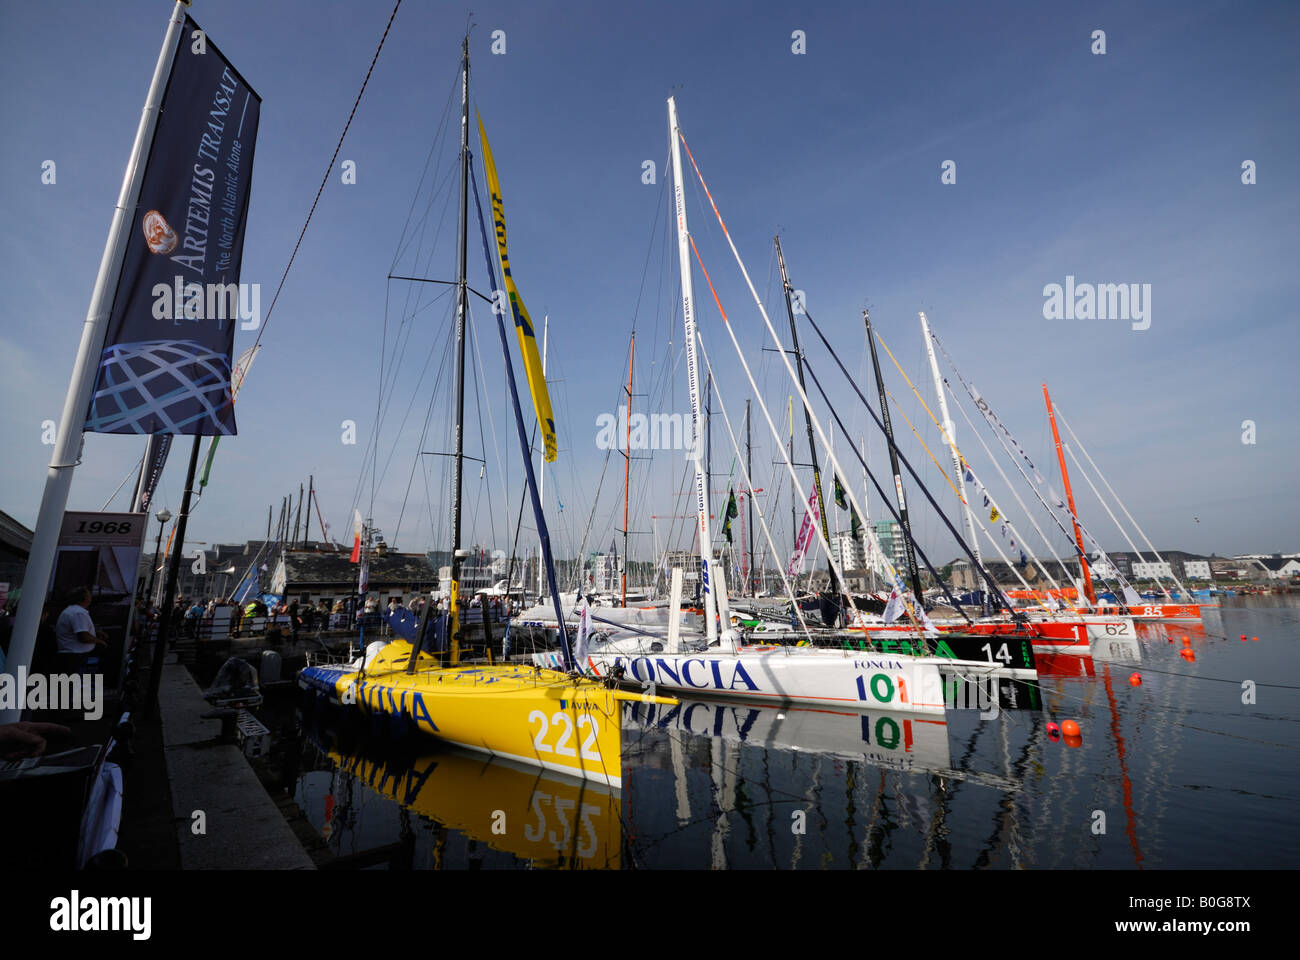 Yachts moored at the start of the Transat 2008 transatlantic yacht race in Plymouth, UK, with Transat flag flying Stock Photo